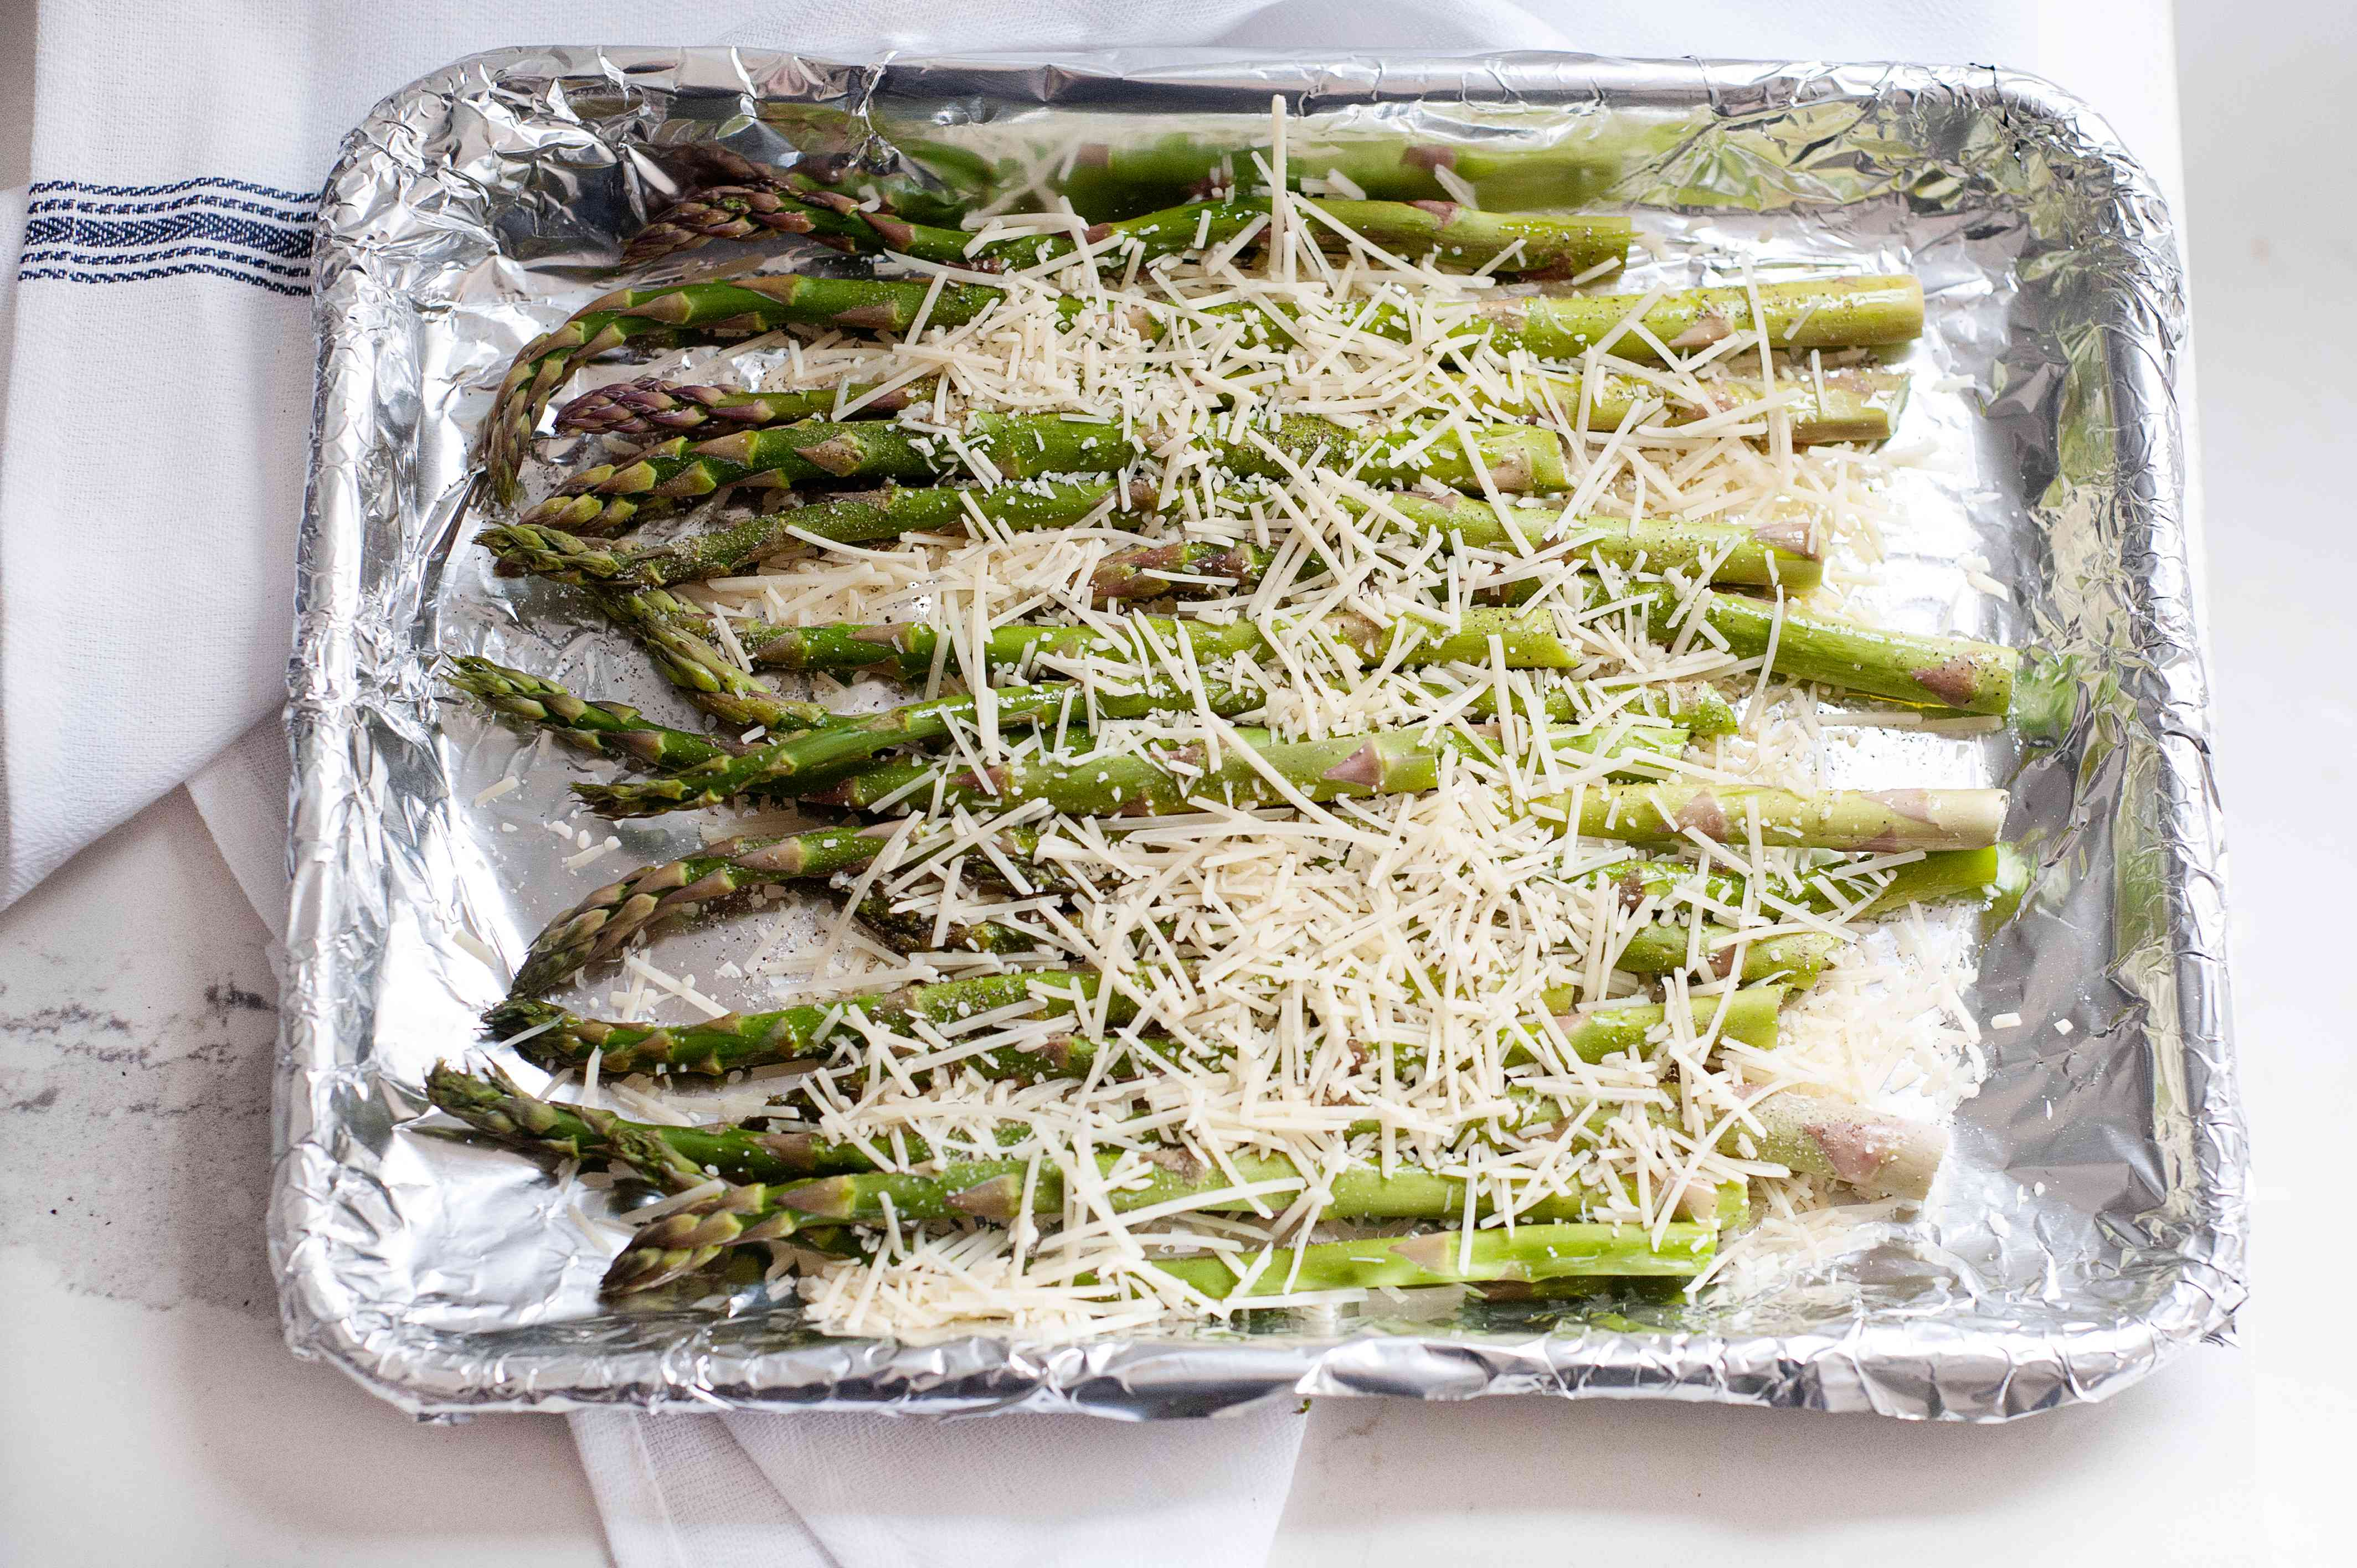 A baking tray with asparagus topped with parmesan to show how to cook asparagus in the oven.